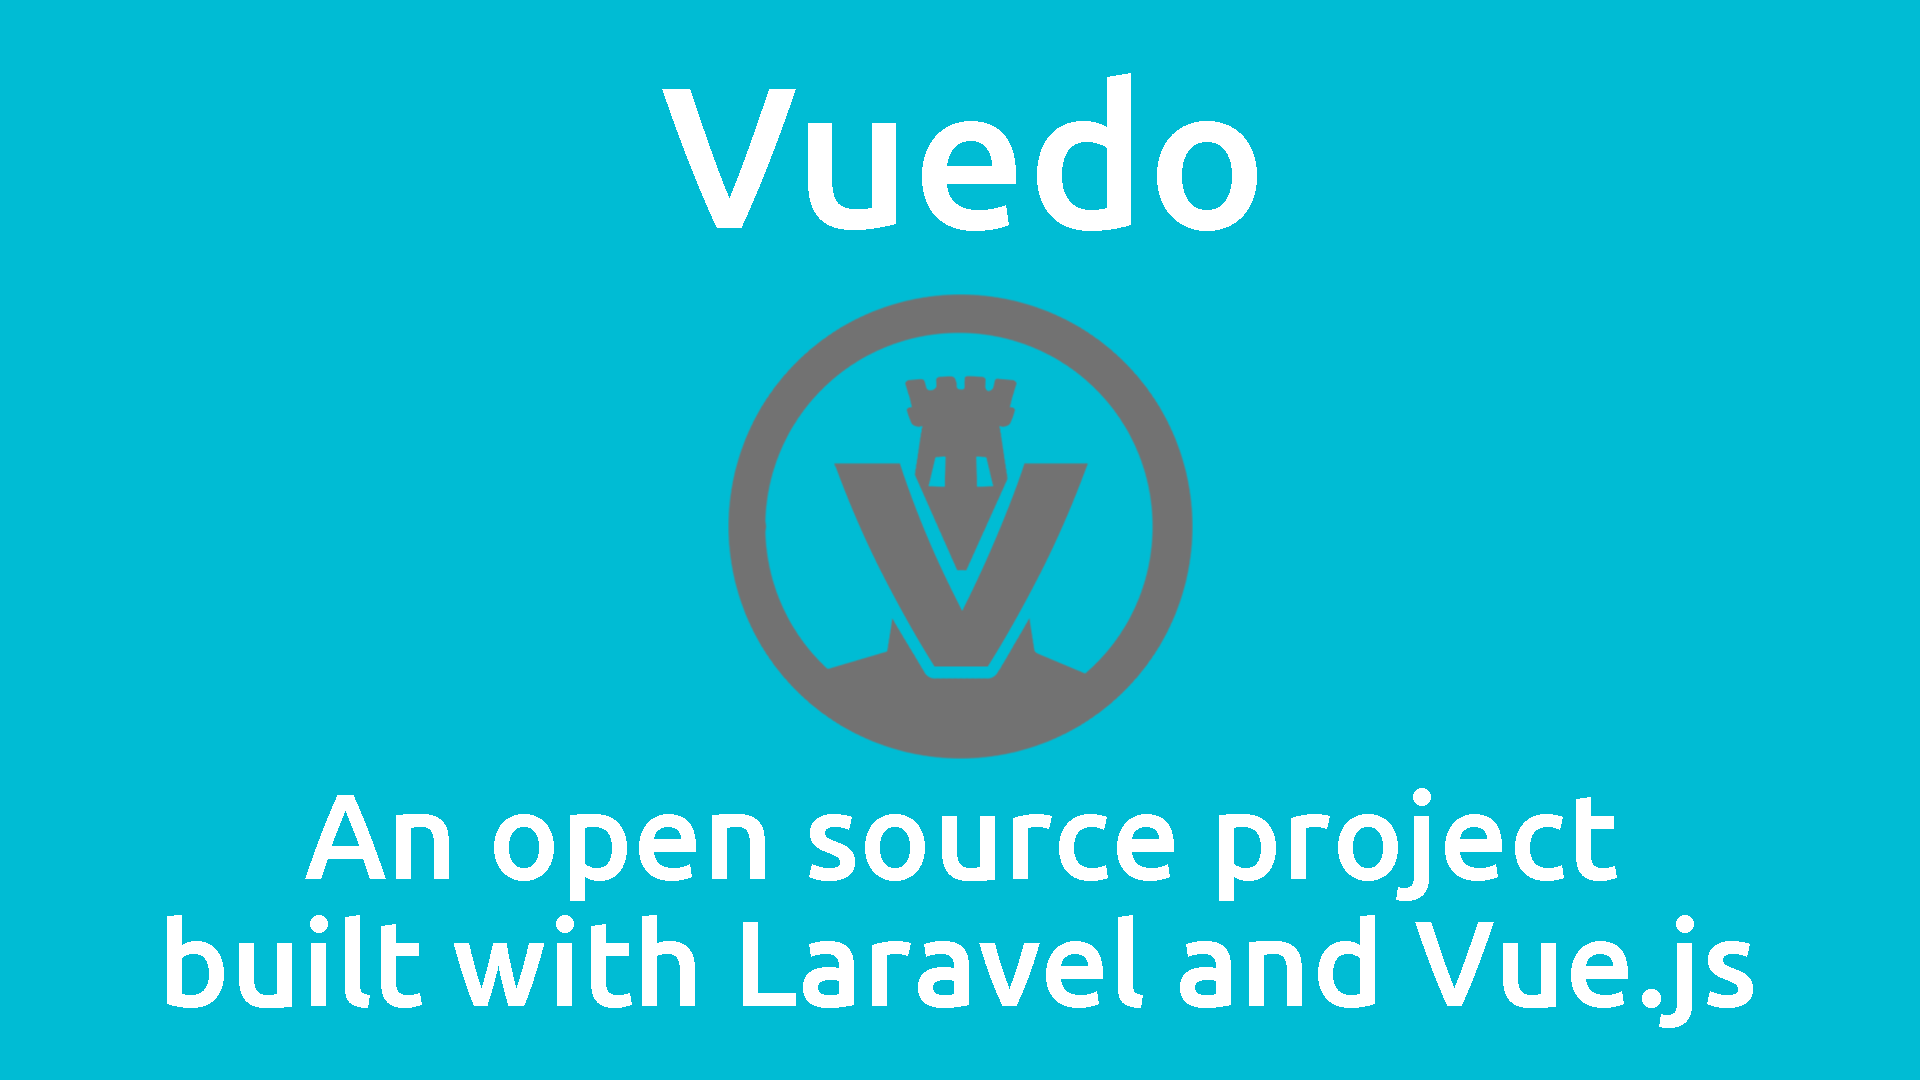 Announcing Vuedo: An open source project built with Laravel